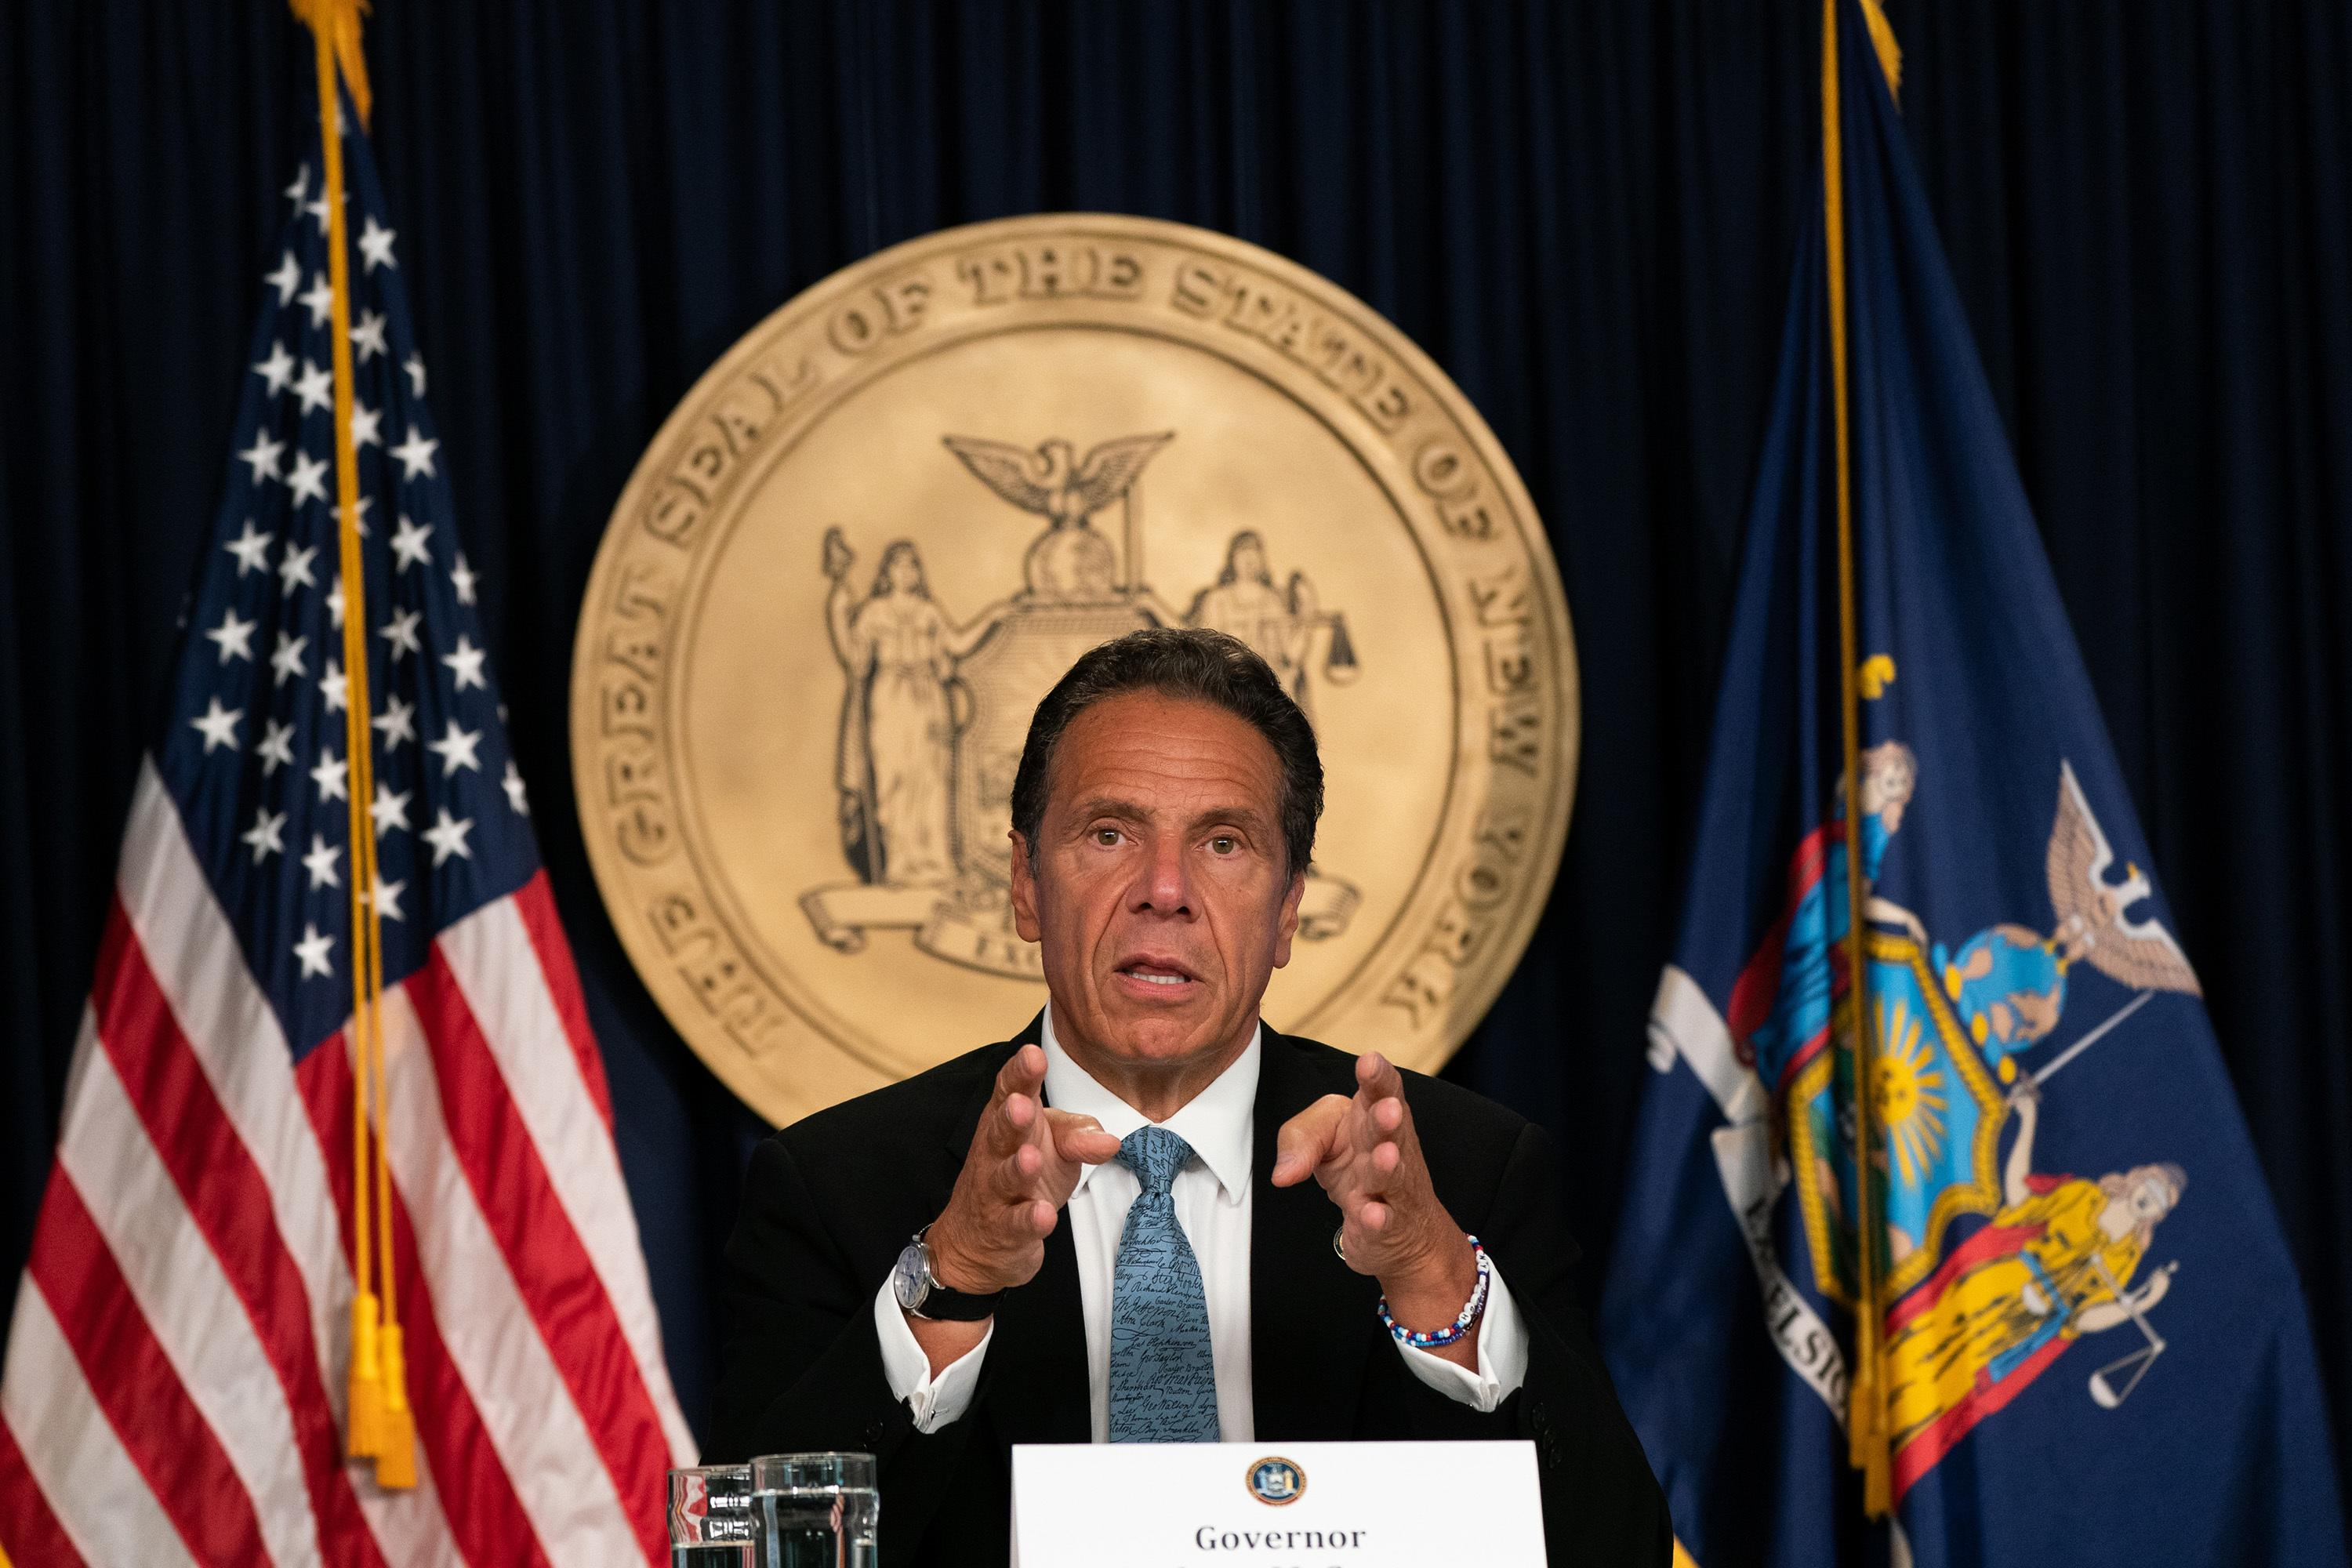 New York's coronavirus infection rate drops below 1% as deaths plummet, Cuomo says